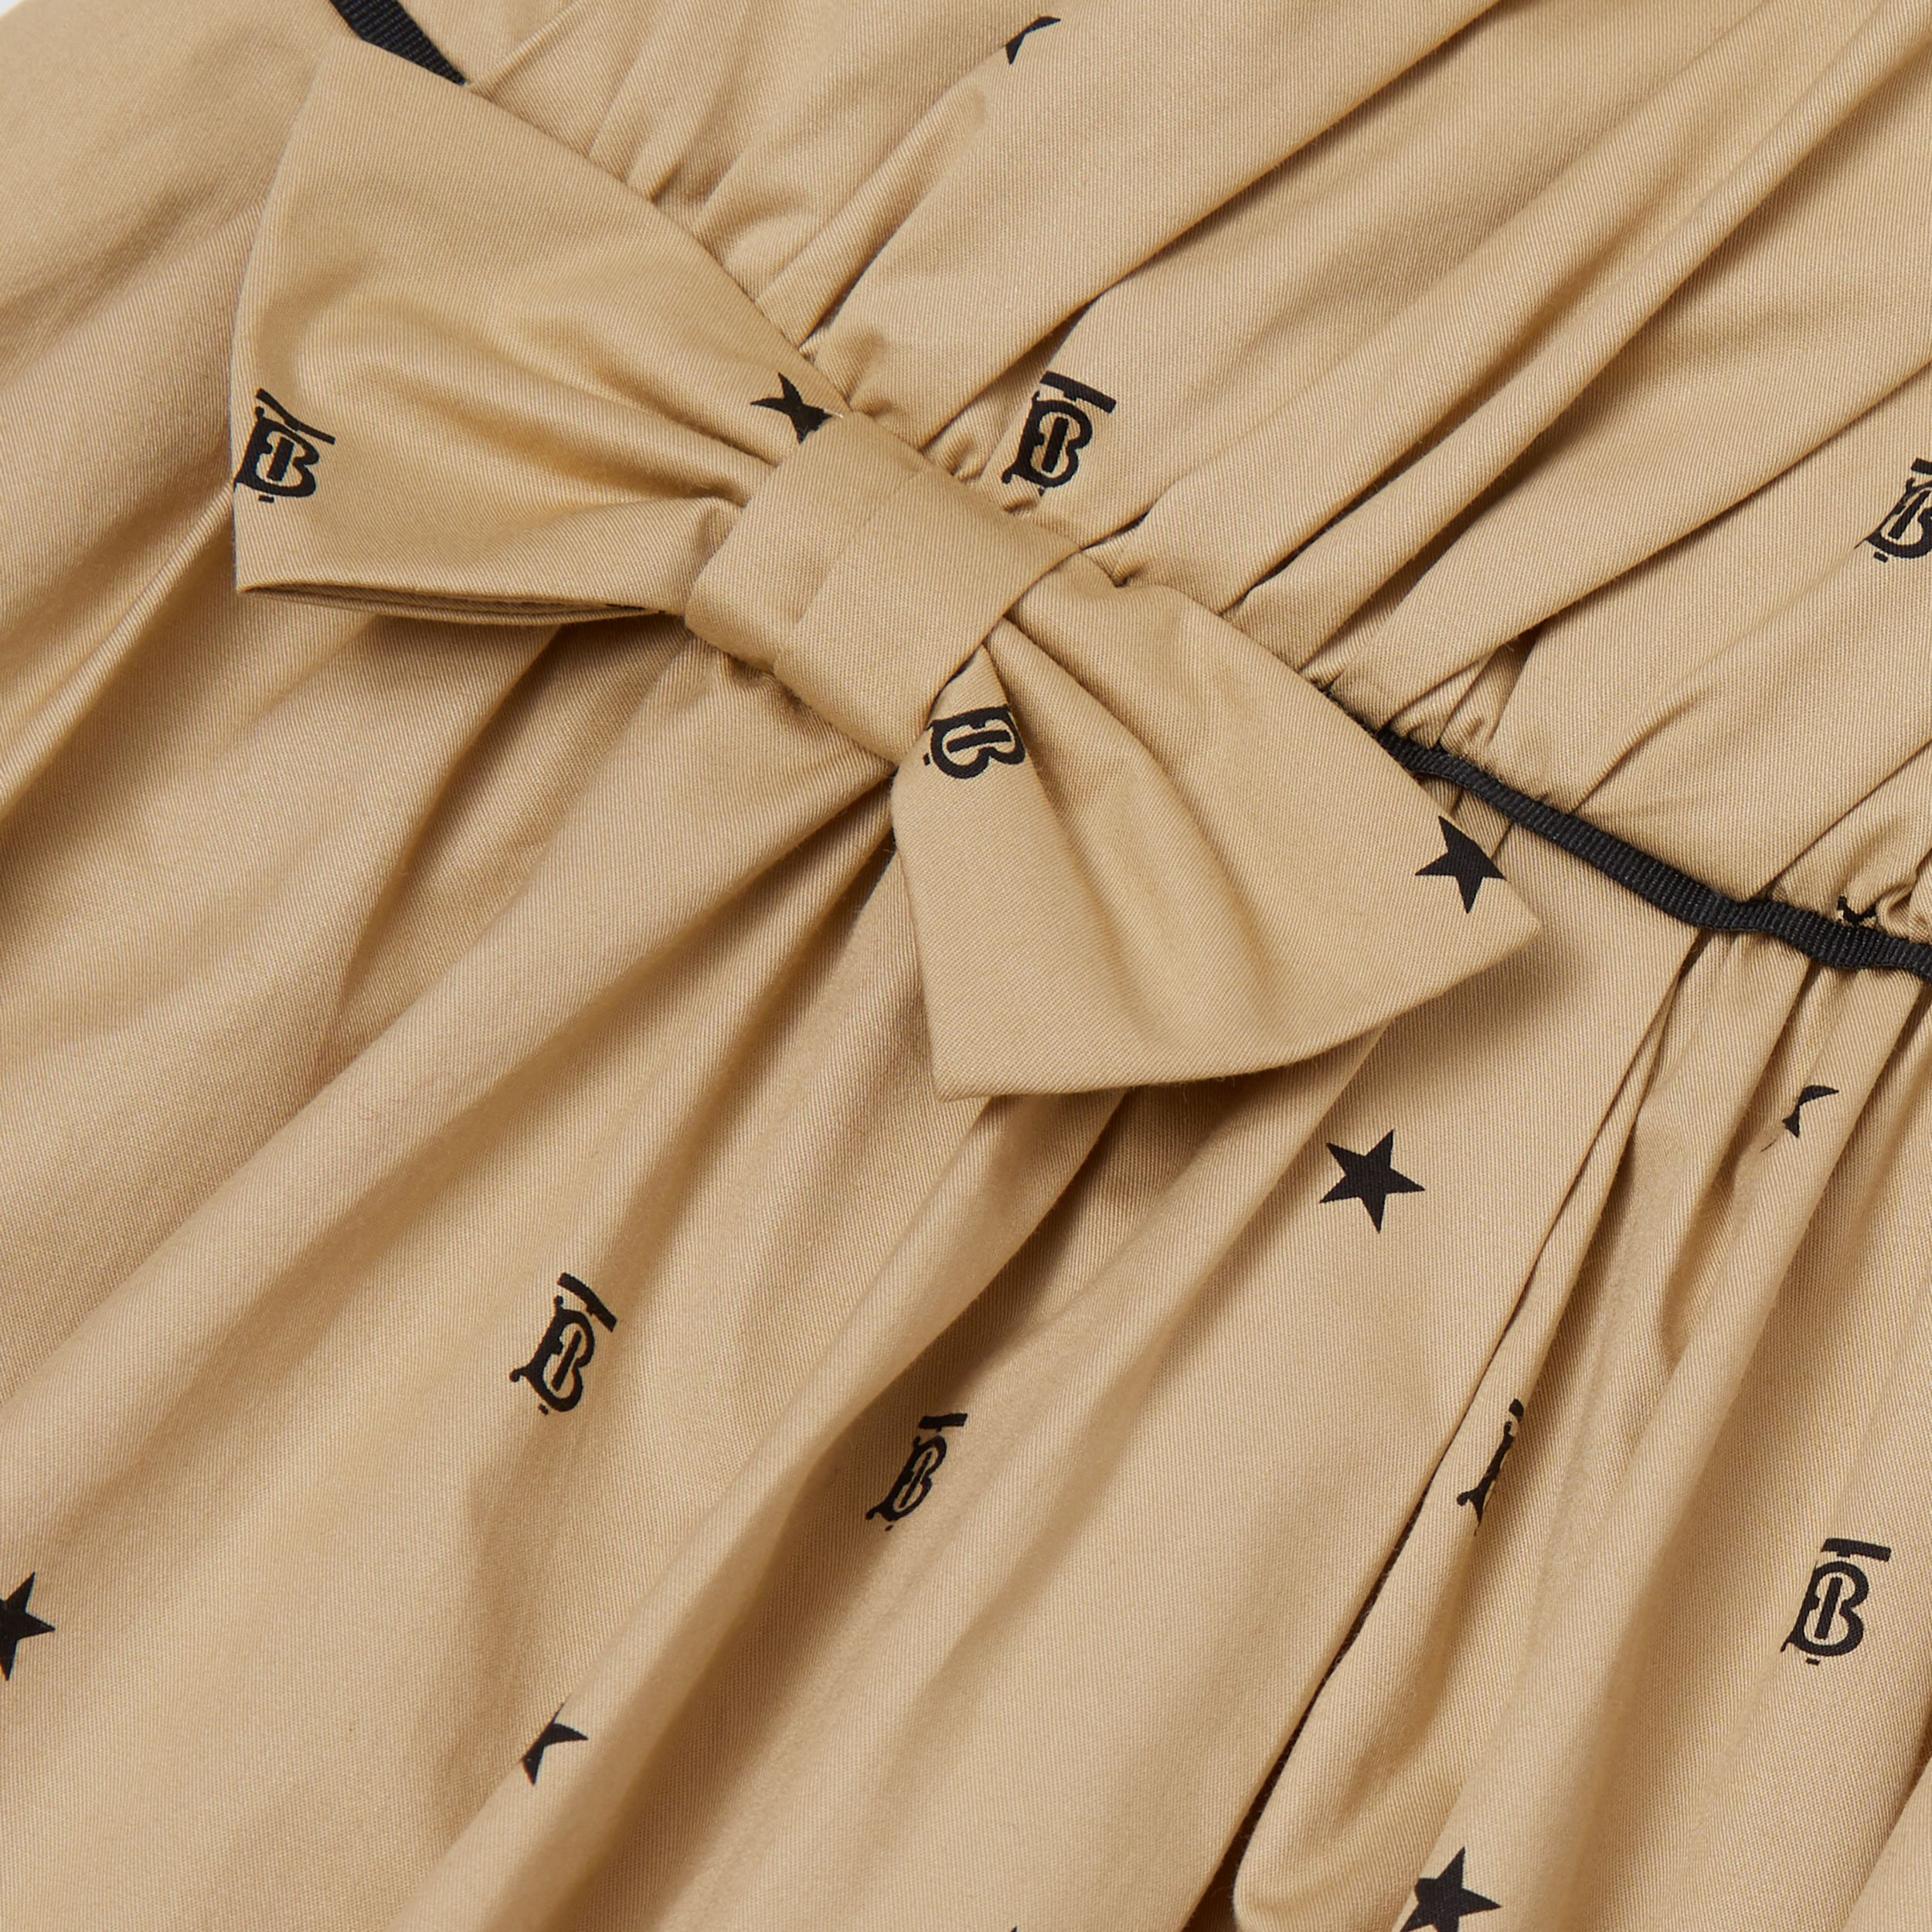 Star and Monogram Motif Stretch Cotton Dress in Sand | Burberry - 2